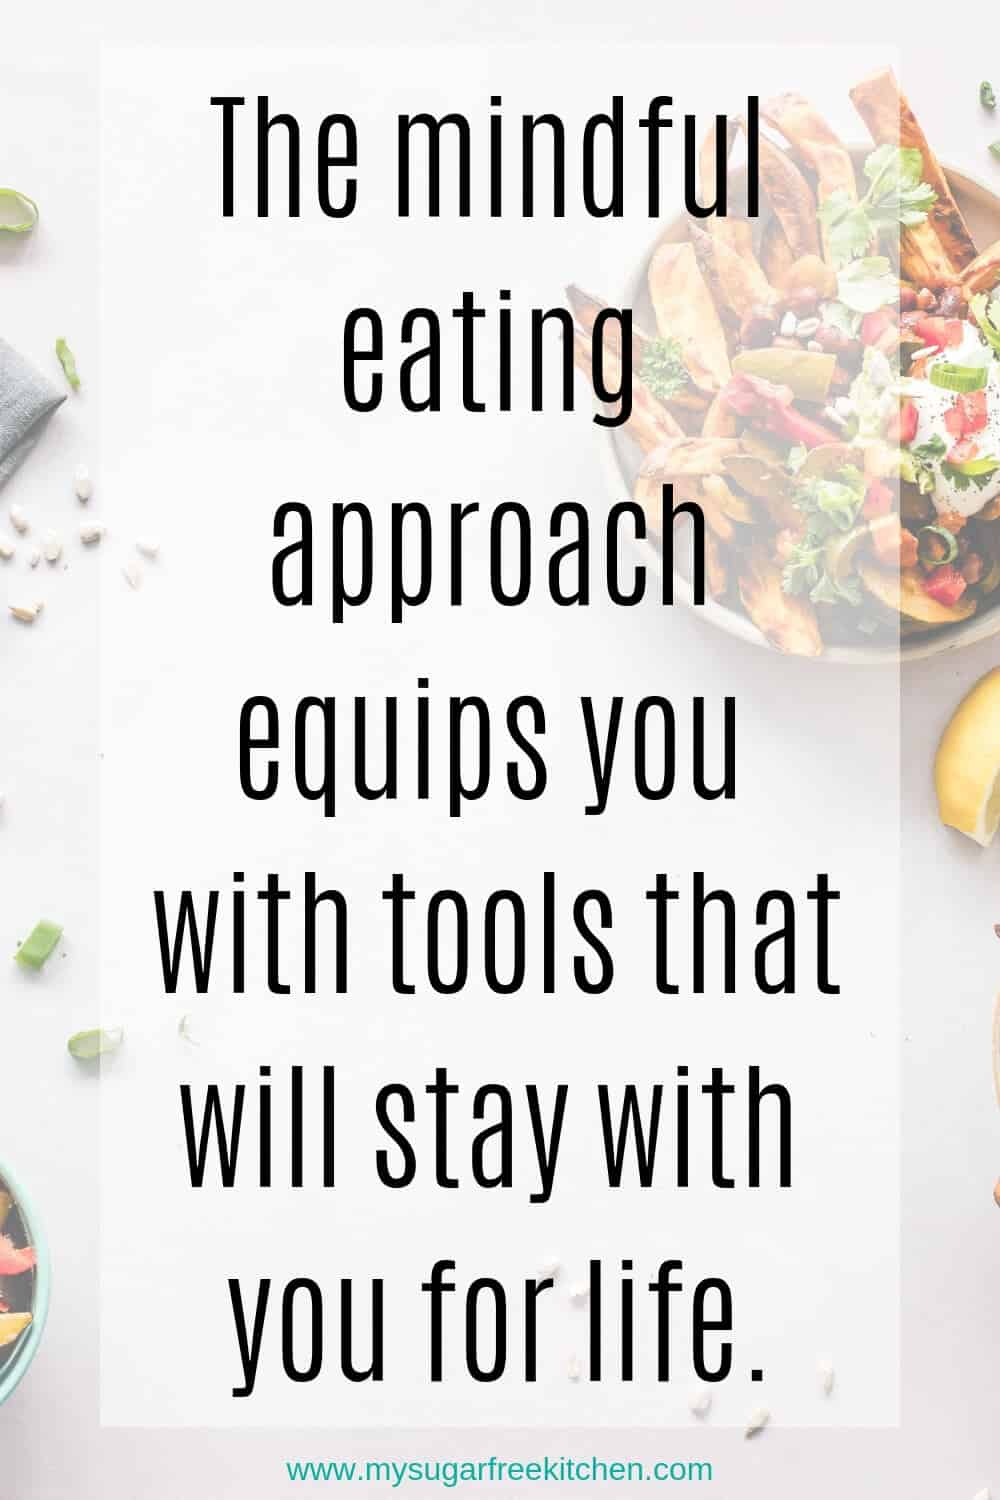 Benefits of mindful eating - 4